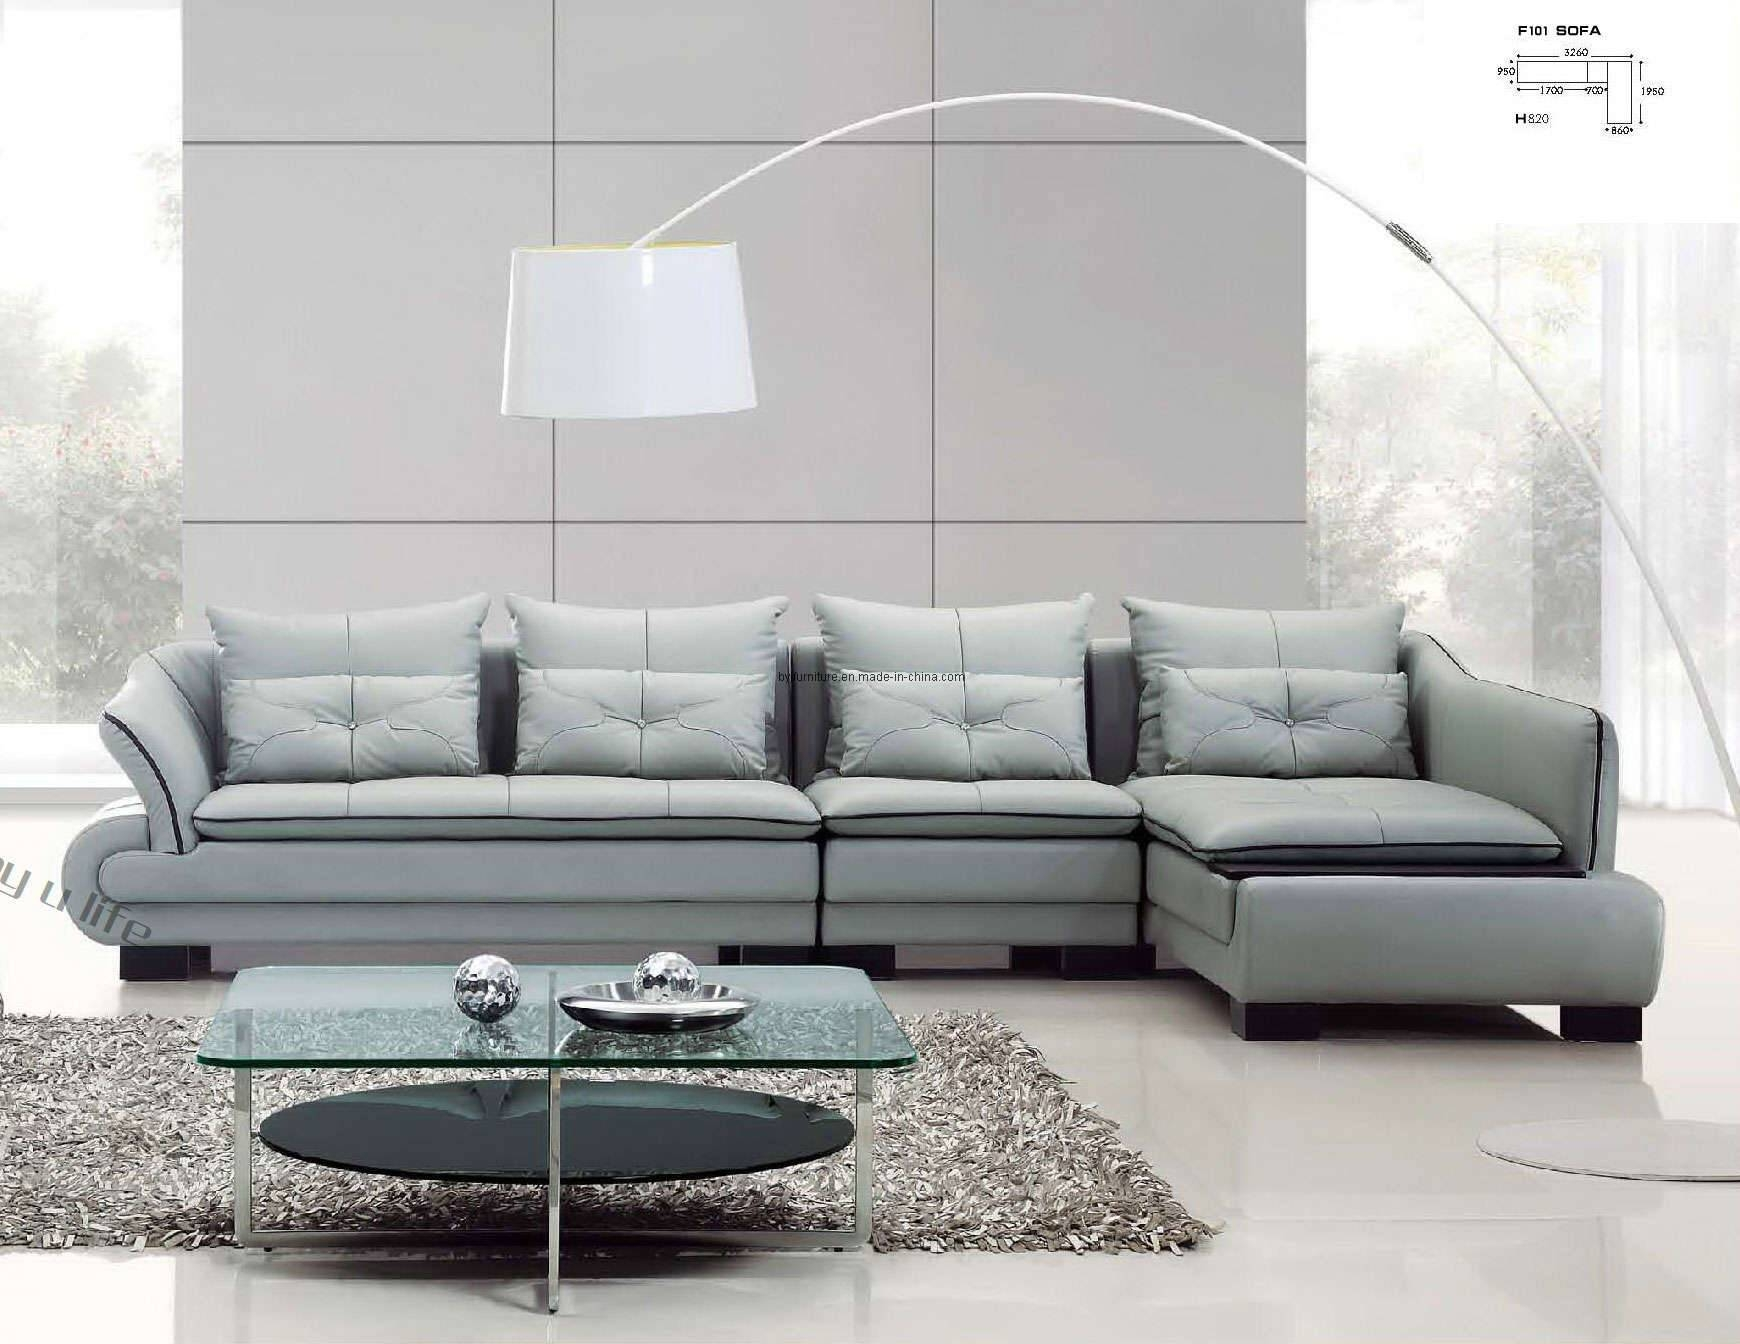 Sofa Contemporary Furniture Design Fair Ideas Decor Stunning with Contemporary Sofas And Chairs (Image 13 of 15)